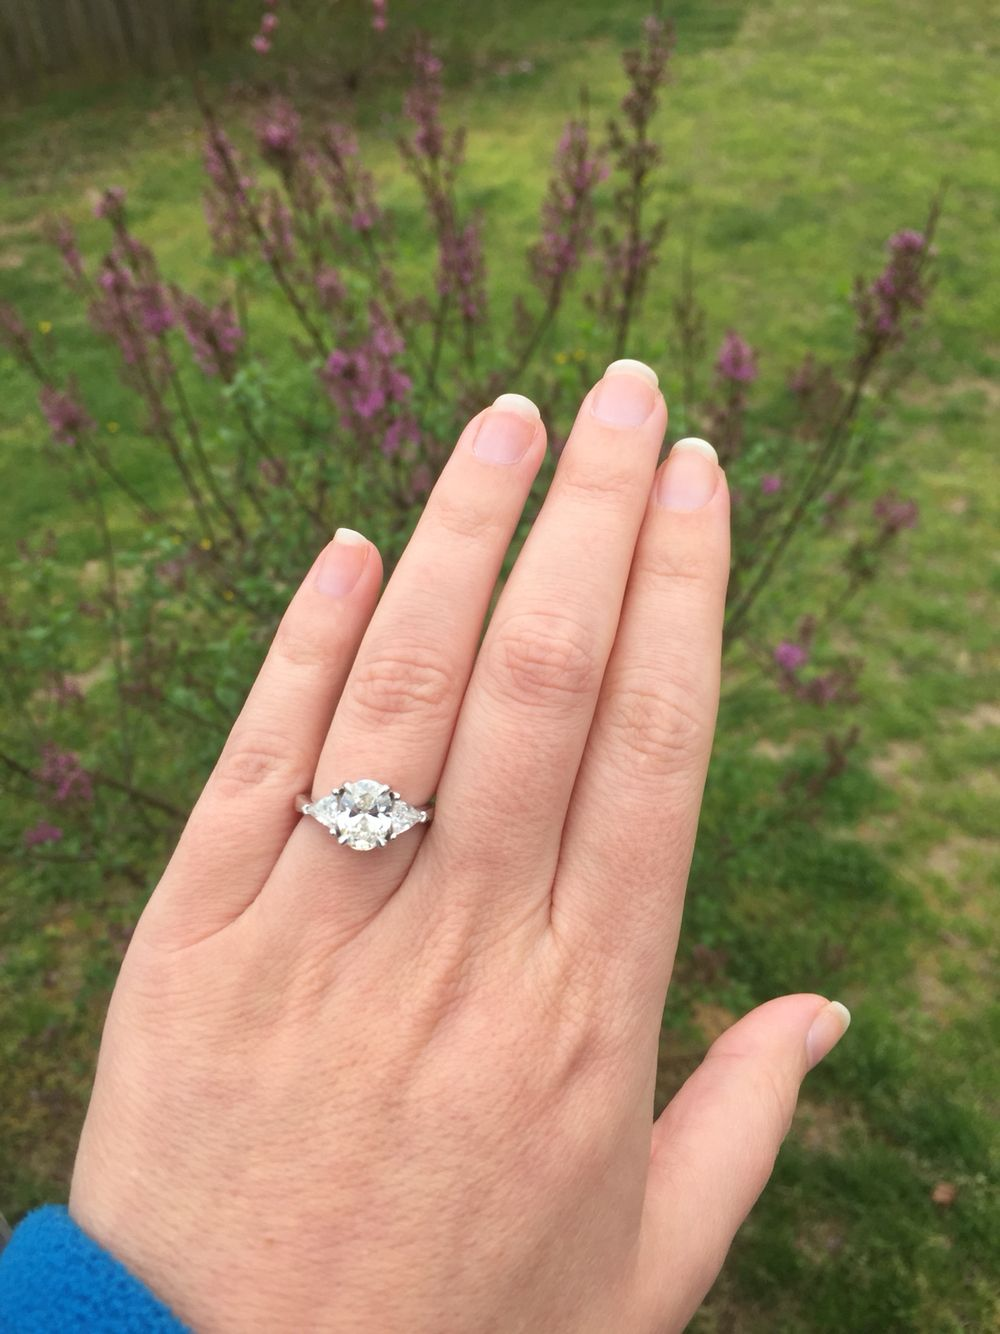 In love with my engagement ring!!!! 2 carat Oval cut diamond with ...